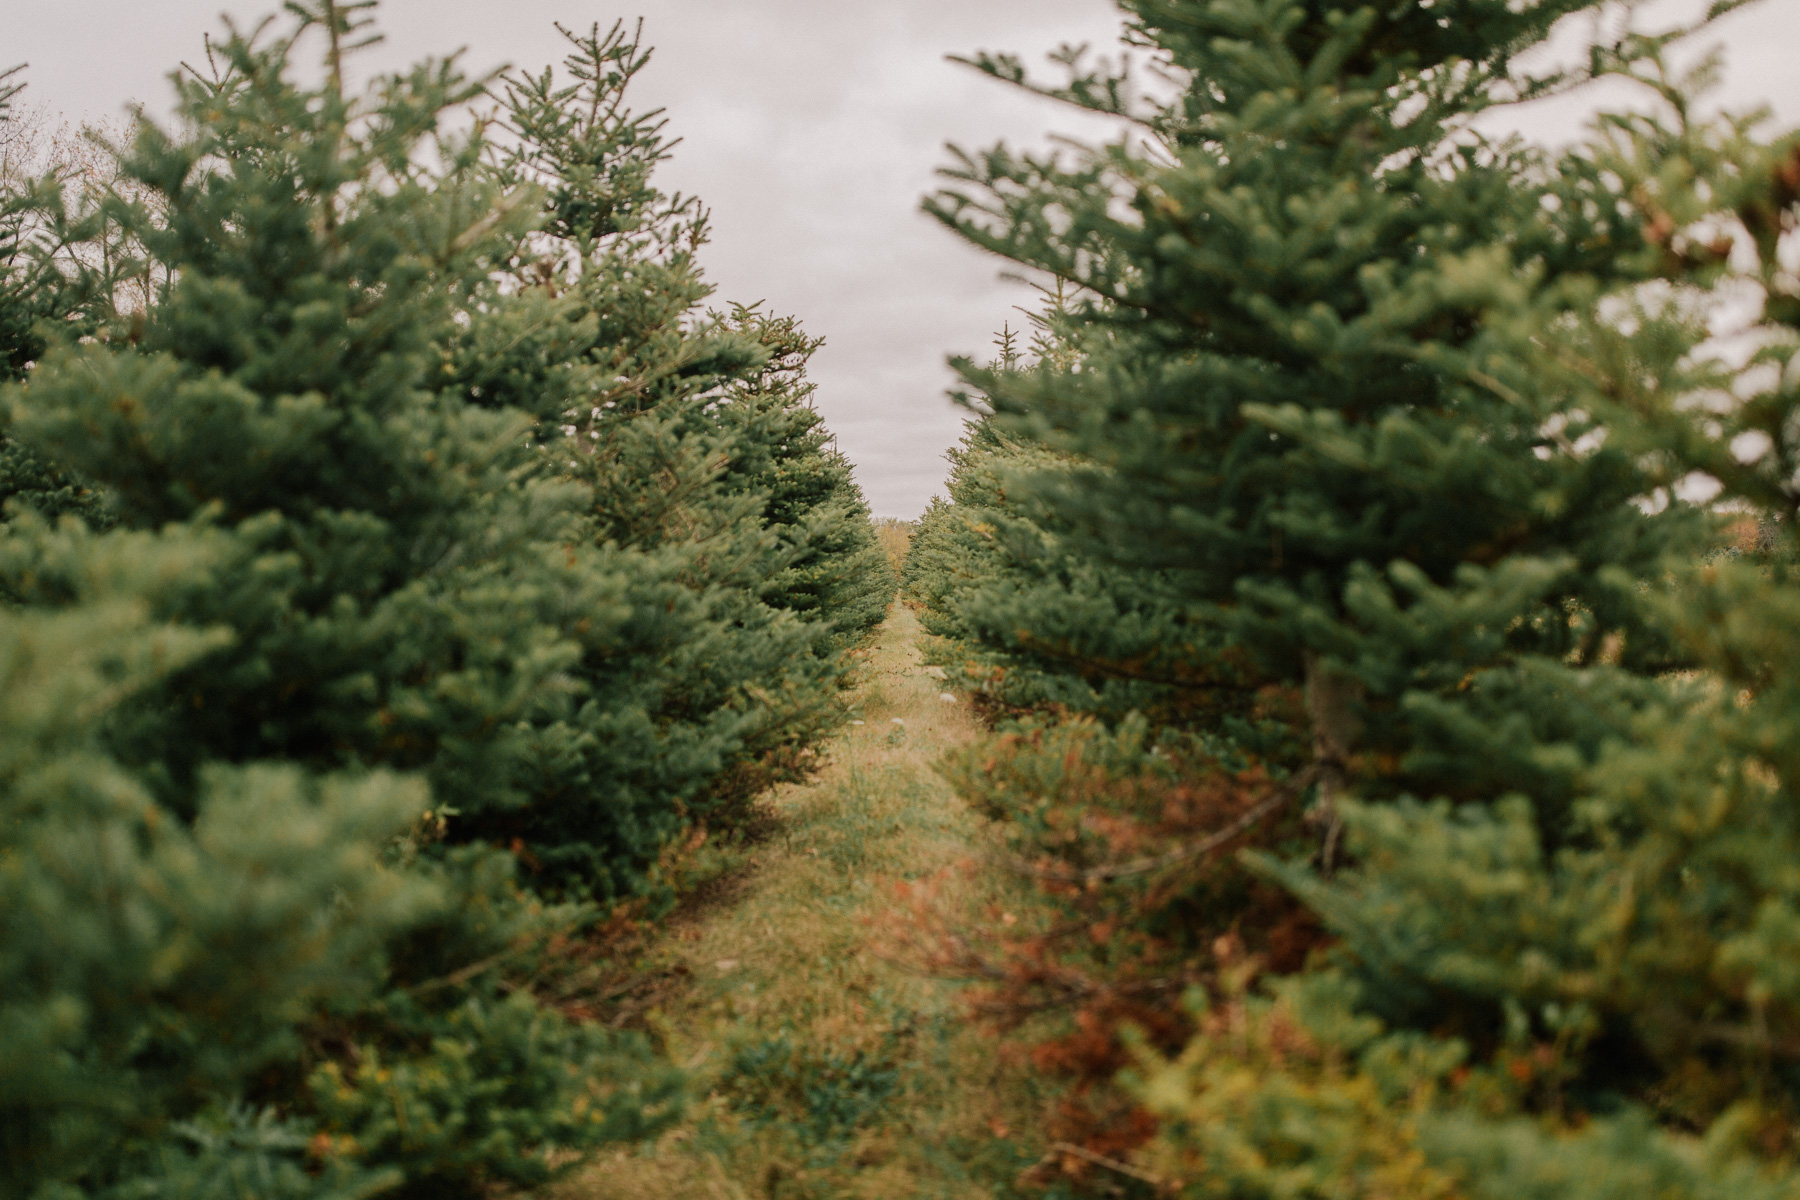 A Visit to the Christmas Tree Farm